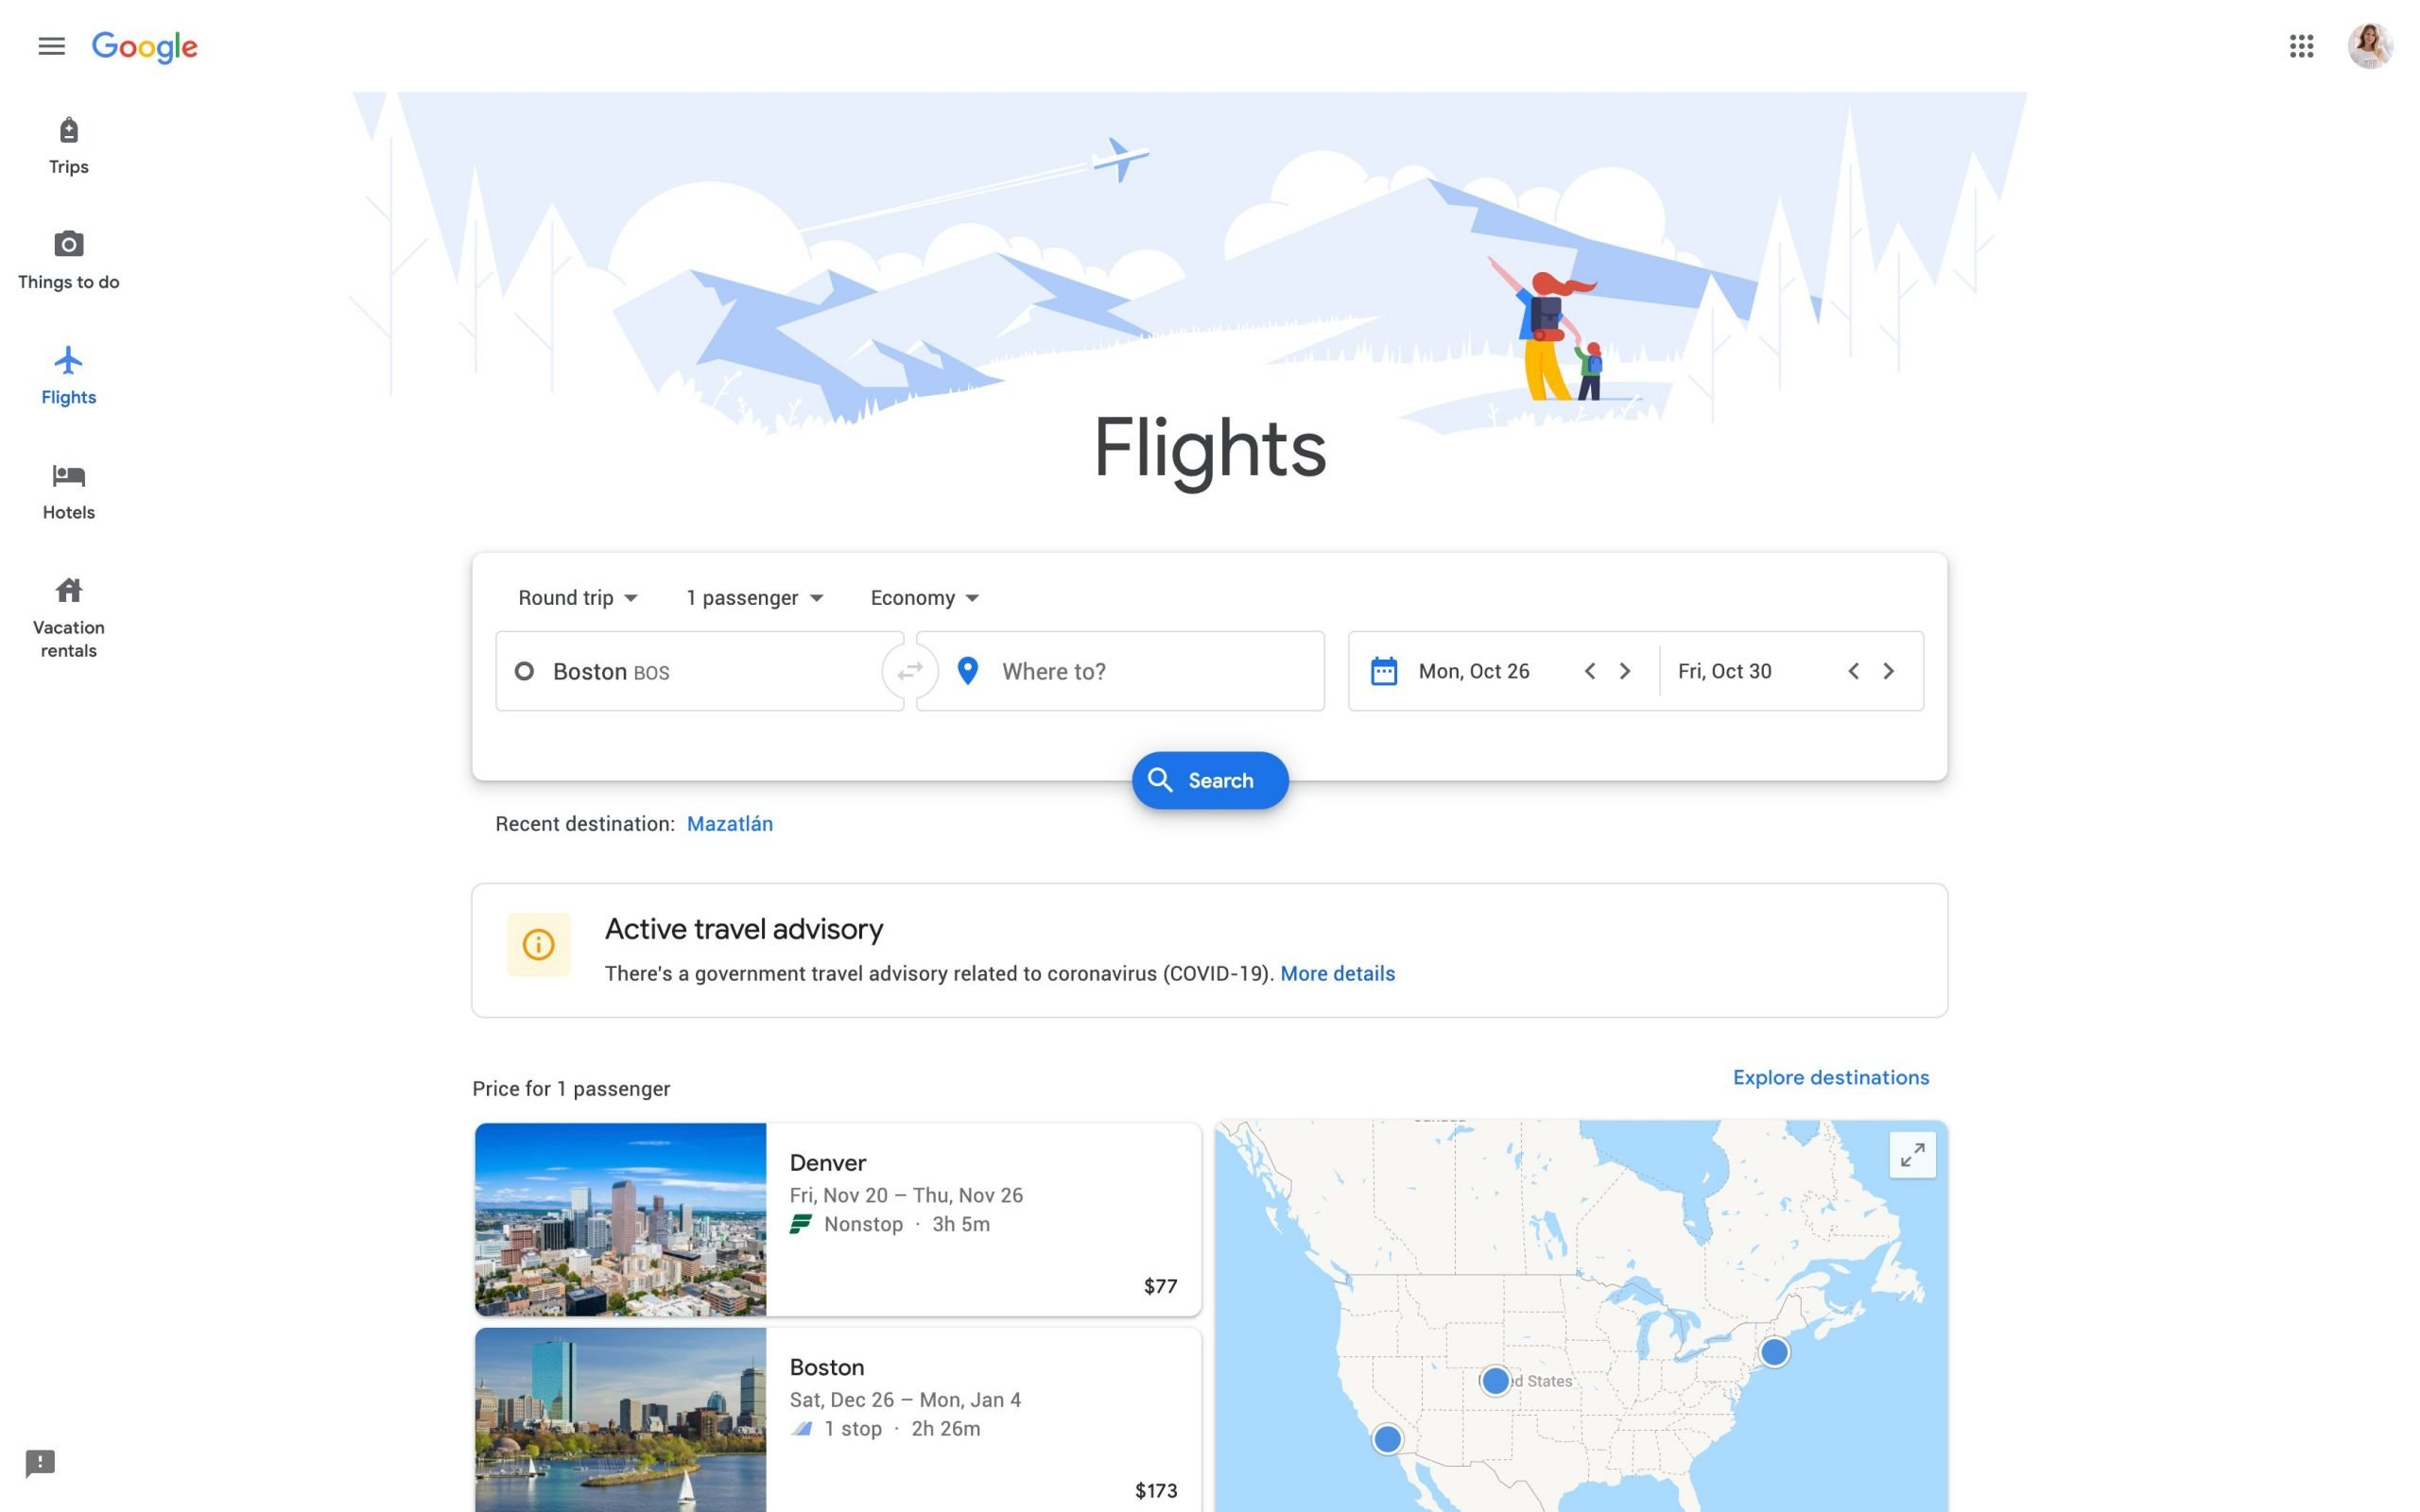 How to find cheap flights - Screenshot of Google Flights home page where you can input departure airport and destination as well as travel dates to search for cheap flights